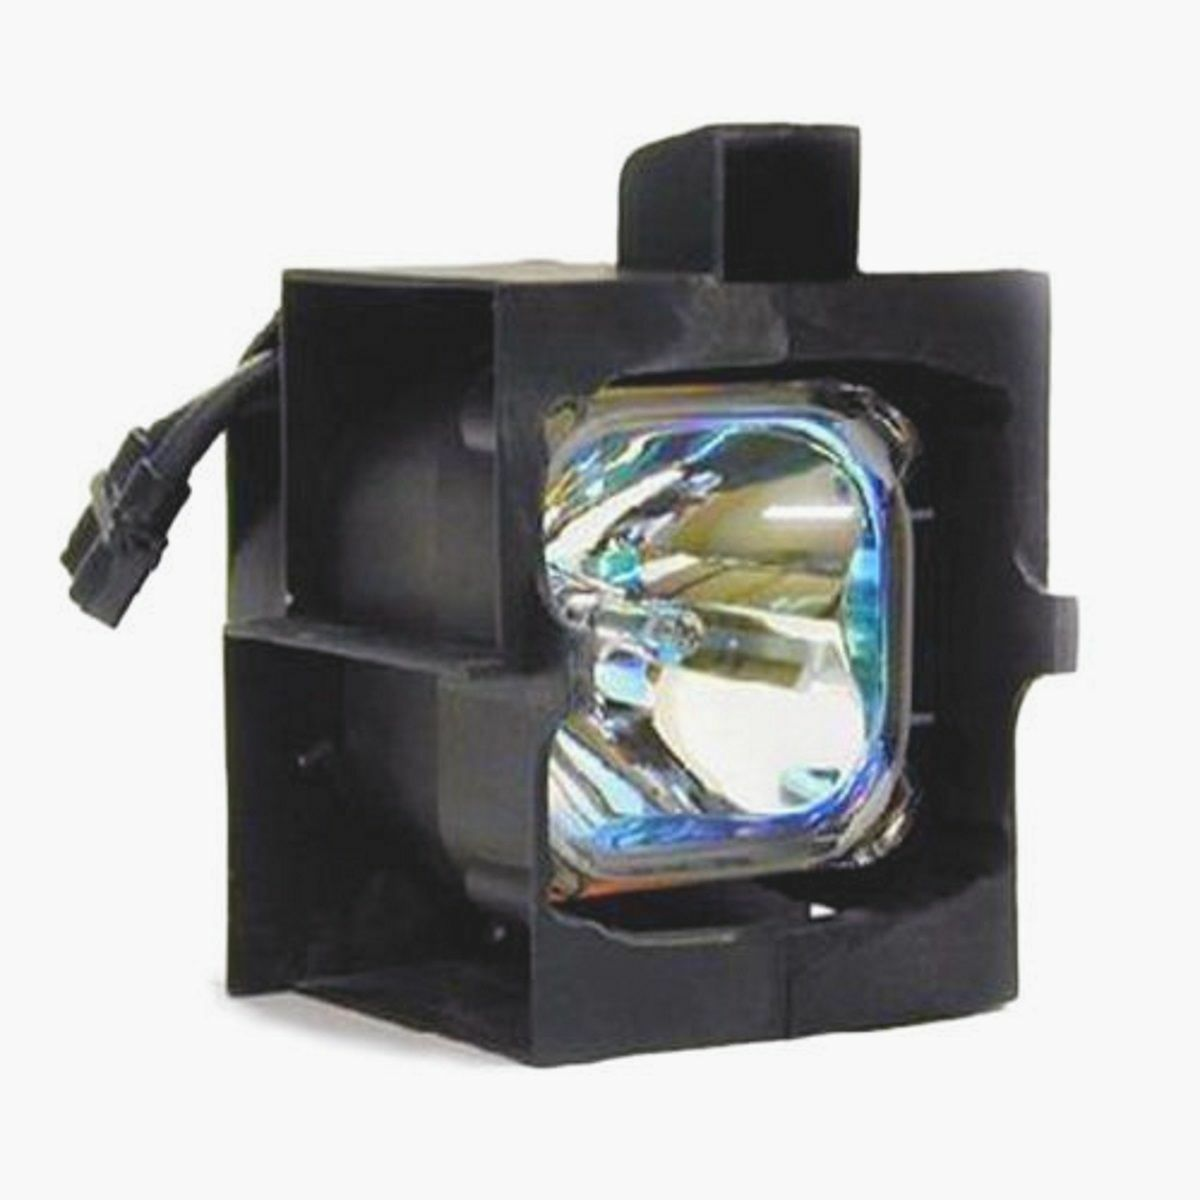 BARCO R98-41760 R9841760 FACTORY ORIGINAL LAMP IN HOUSING FOR MODEL iQ G400